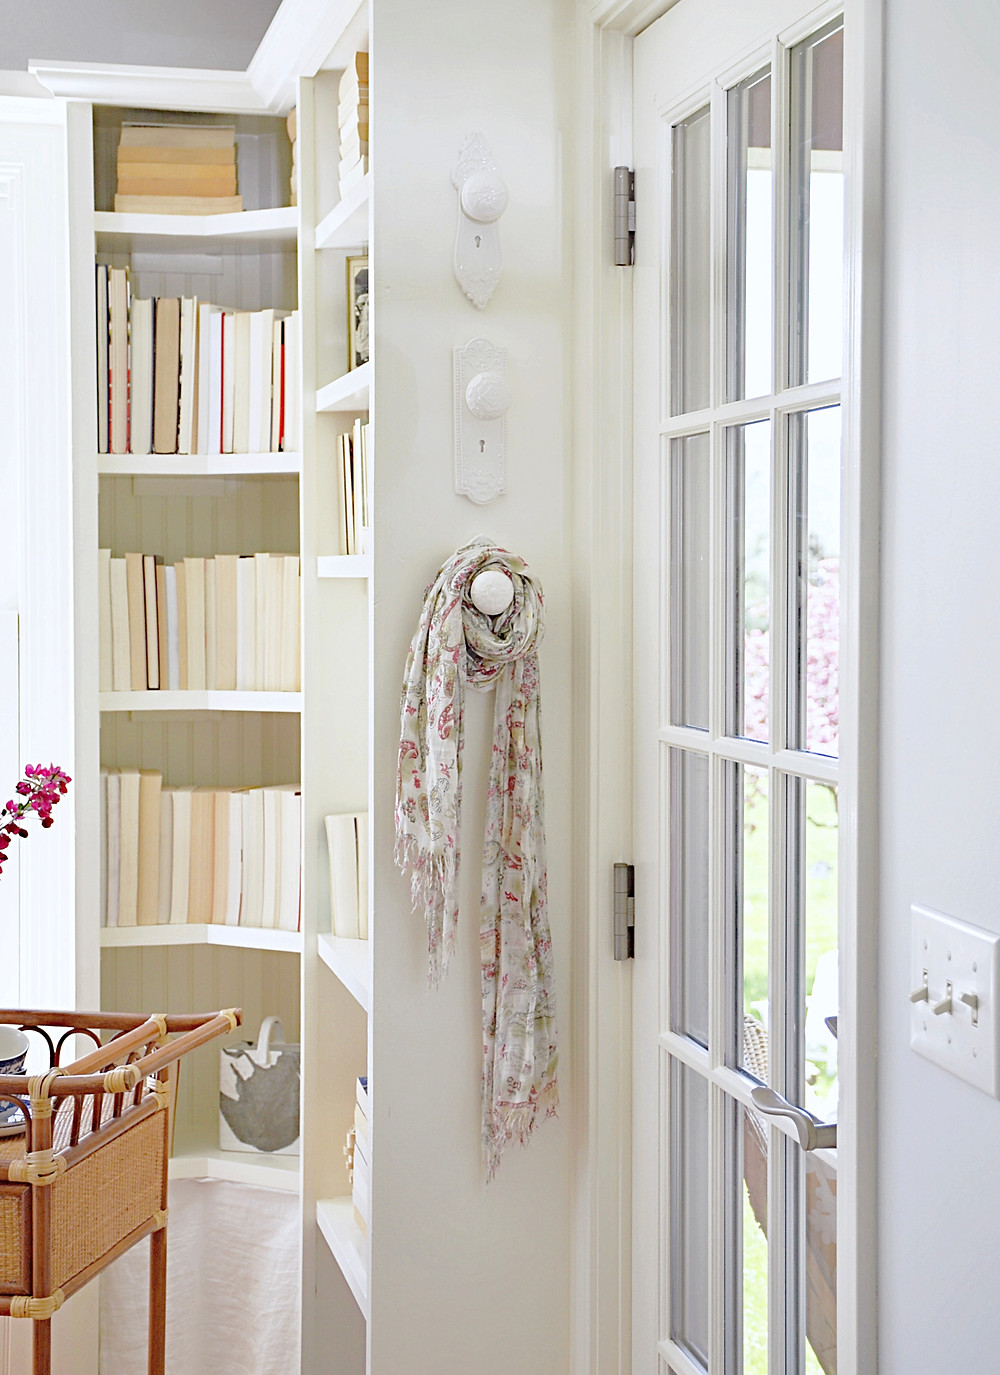 Porcelan white door knob wall hangers and bookshelves w/ books.